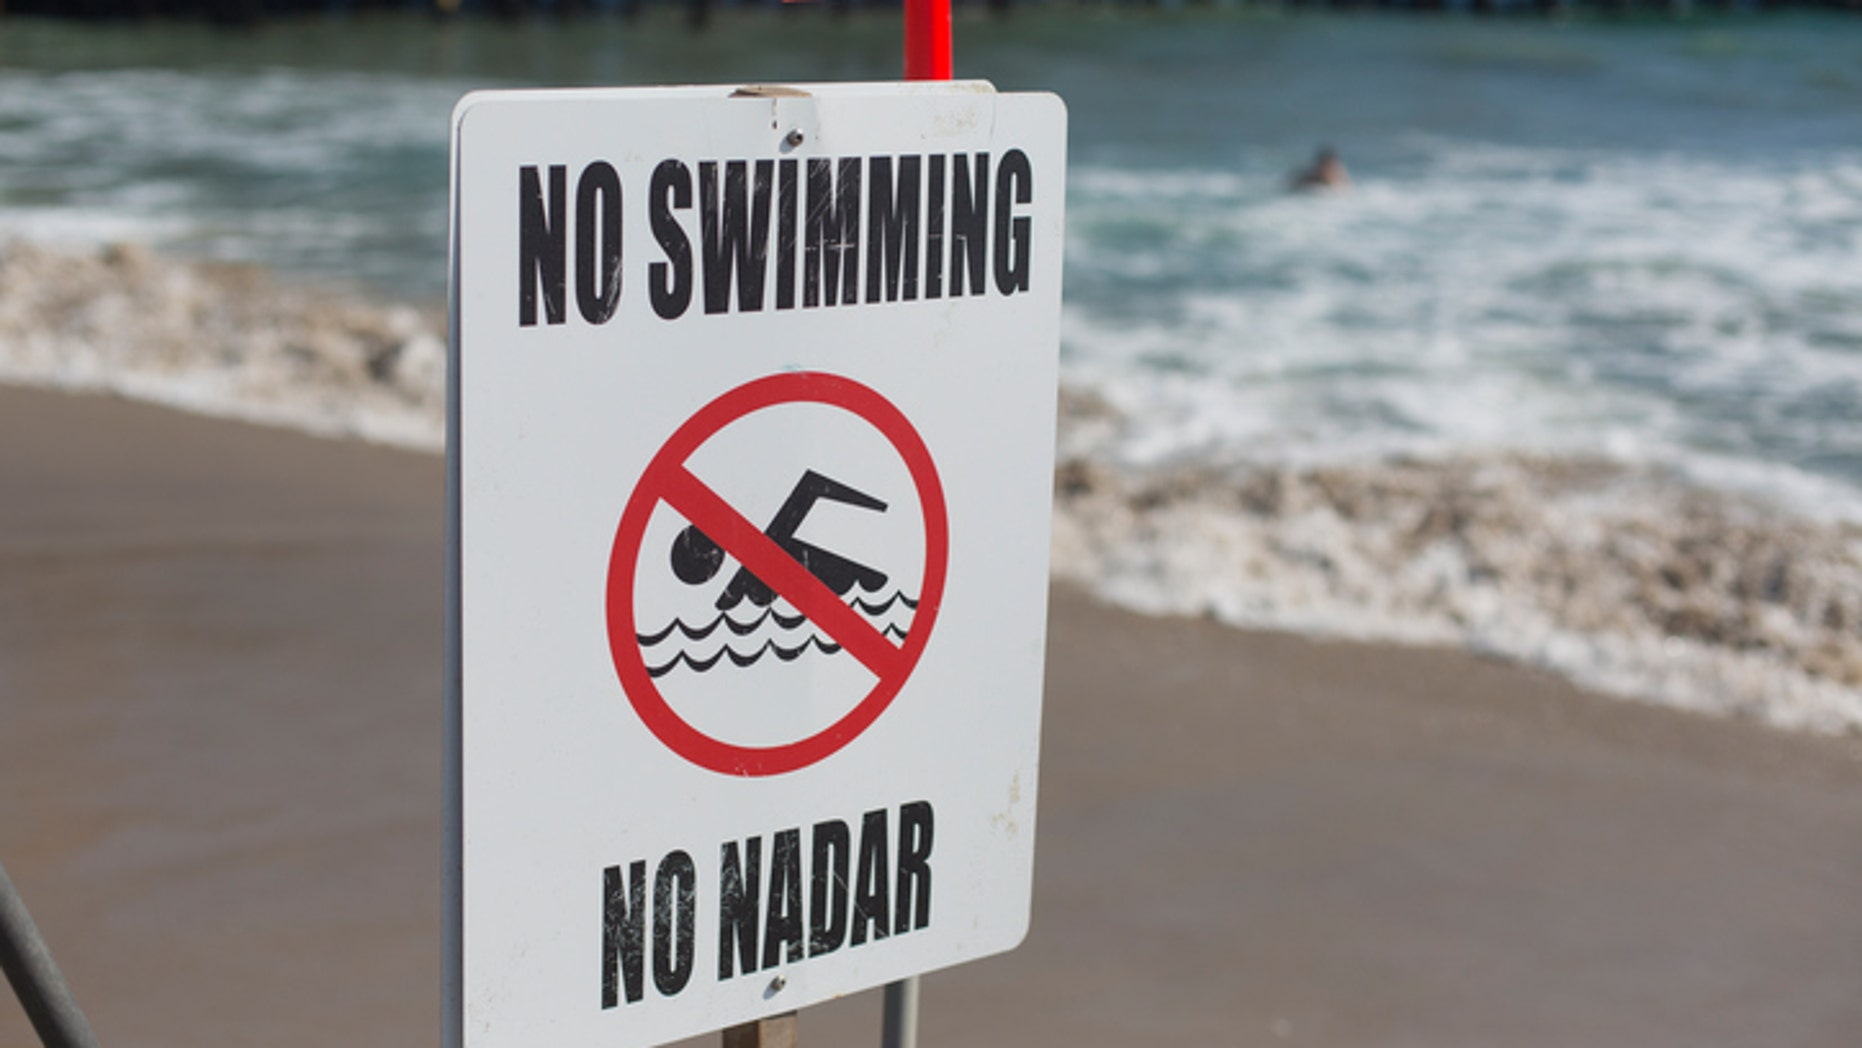 You may want to heed the sign and refrain from swimming in these dangerous places.